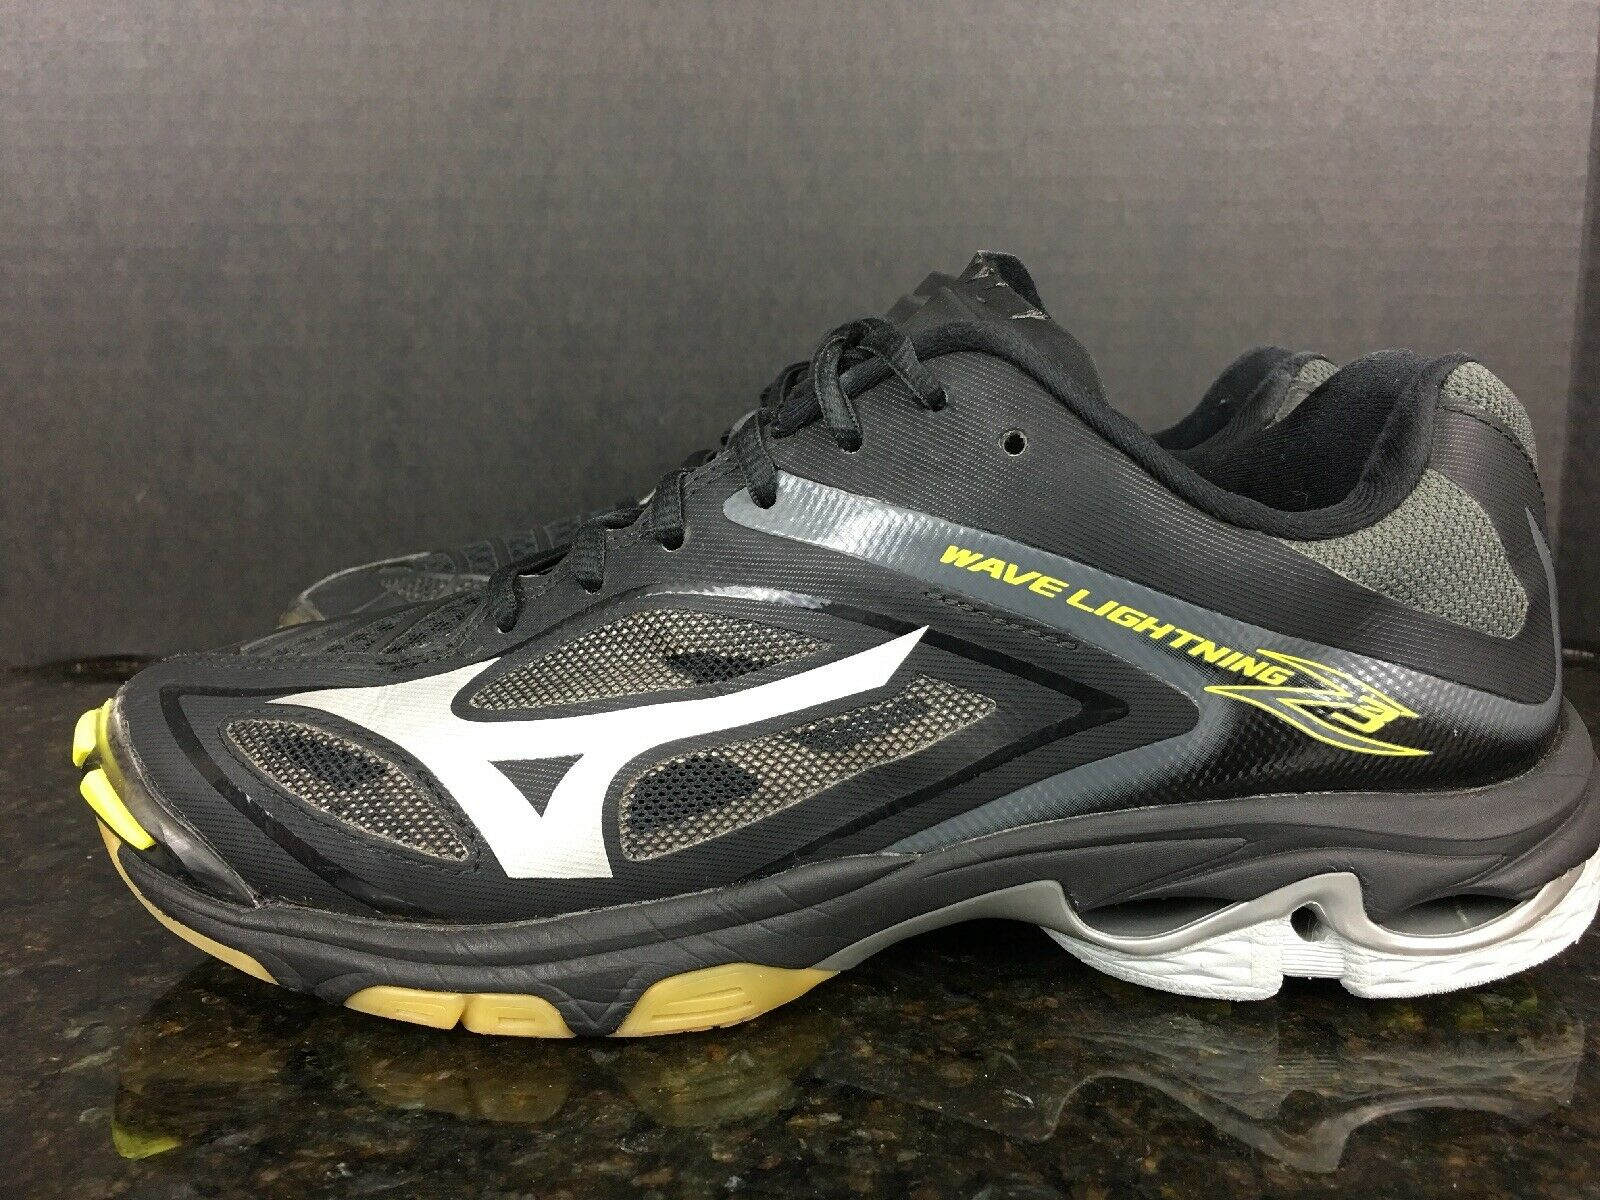 Mizuno Women's Wave Lightning Z3 Volleyball shoes Size 10